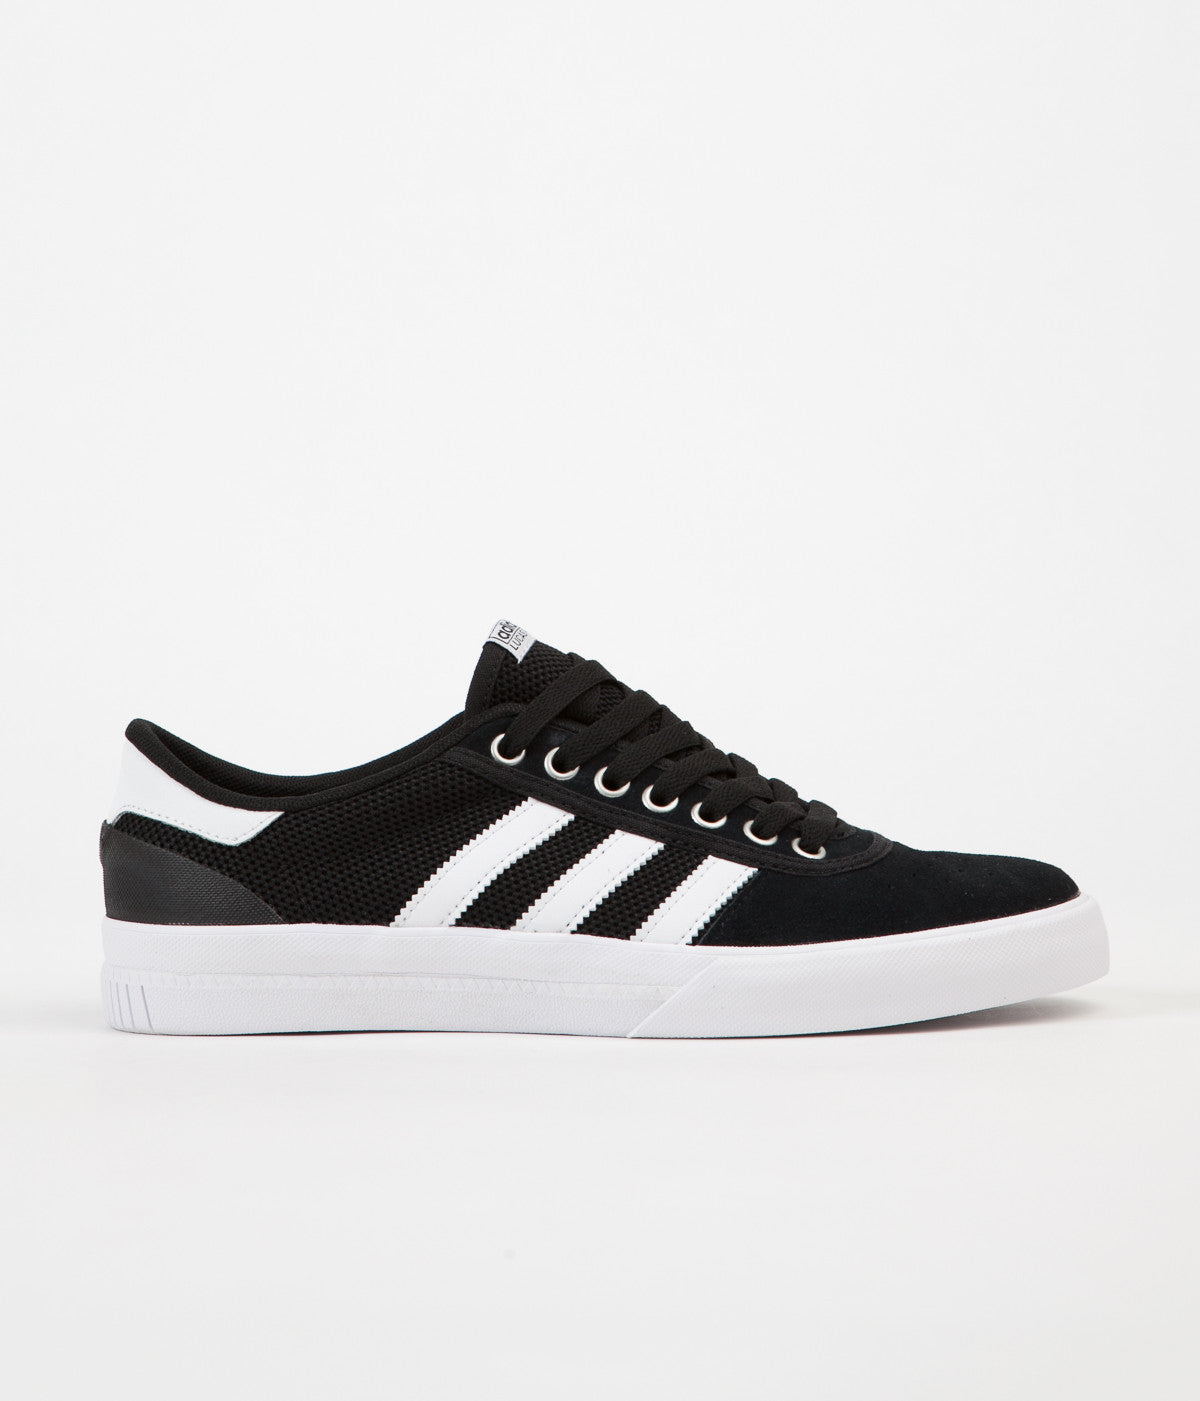 ... Adidas Lucas Premiere ADV Shoes - Core Black   White   White ... 69a1791c3